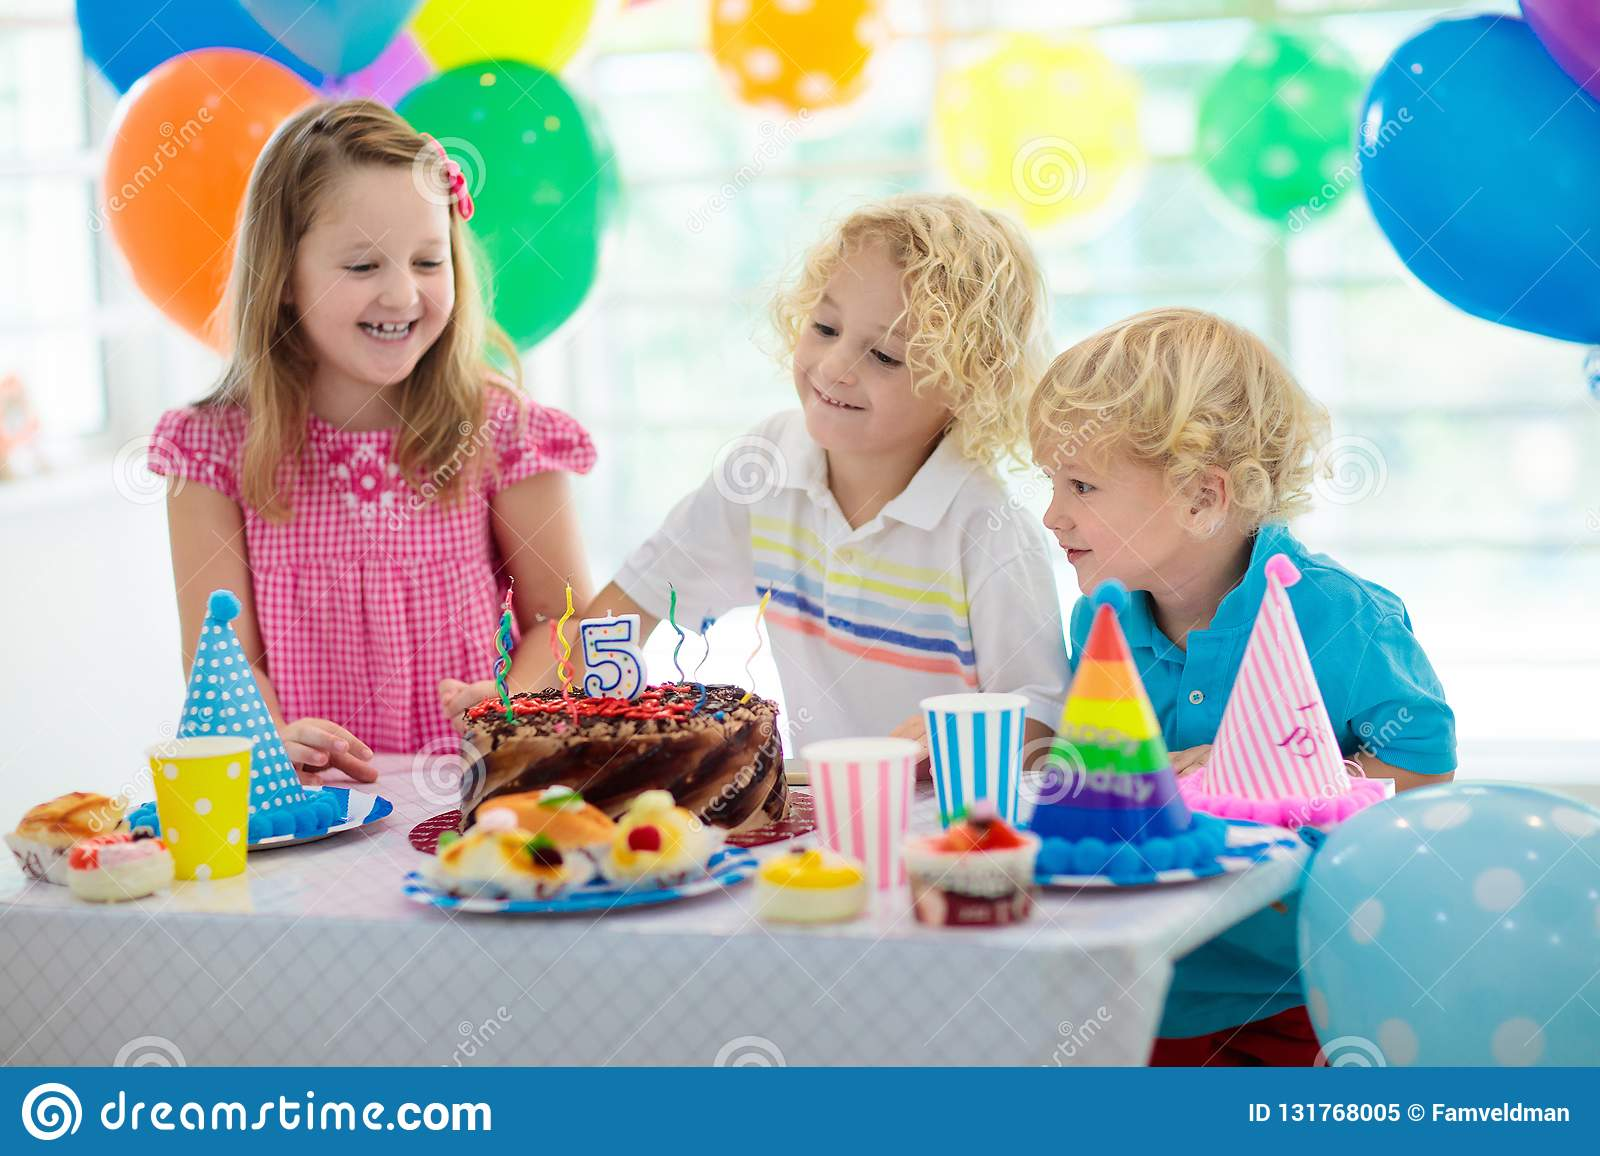 Kids Birthday Party Child Blowing Out Candles On Colorful Cake Decorated Home With Rainbow Flag Banners Balloons Farm Animals Theme Celebration